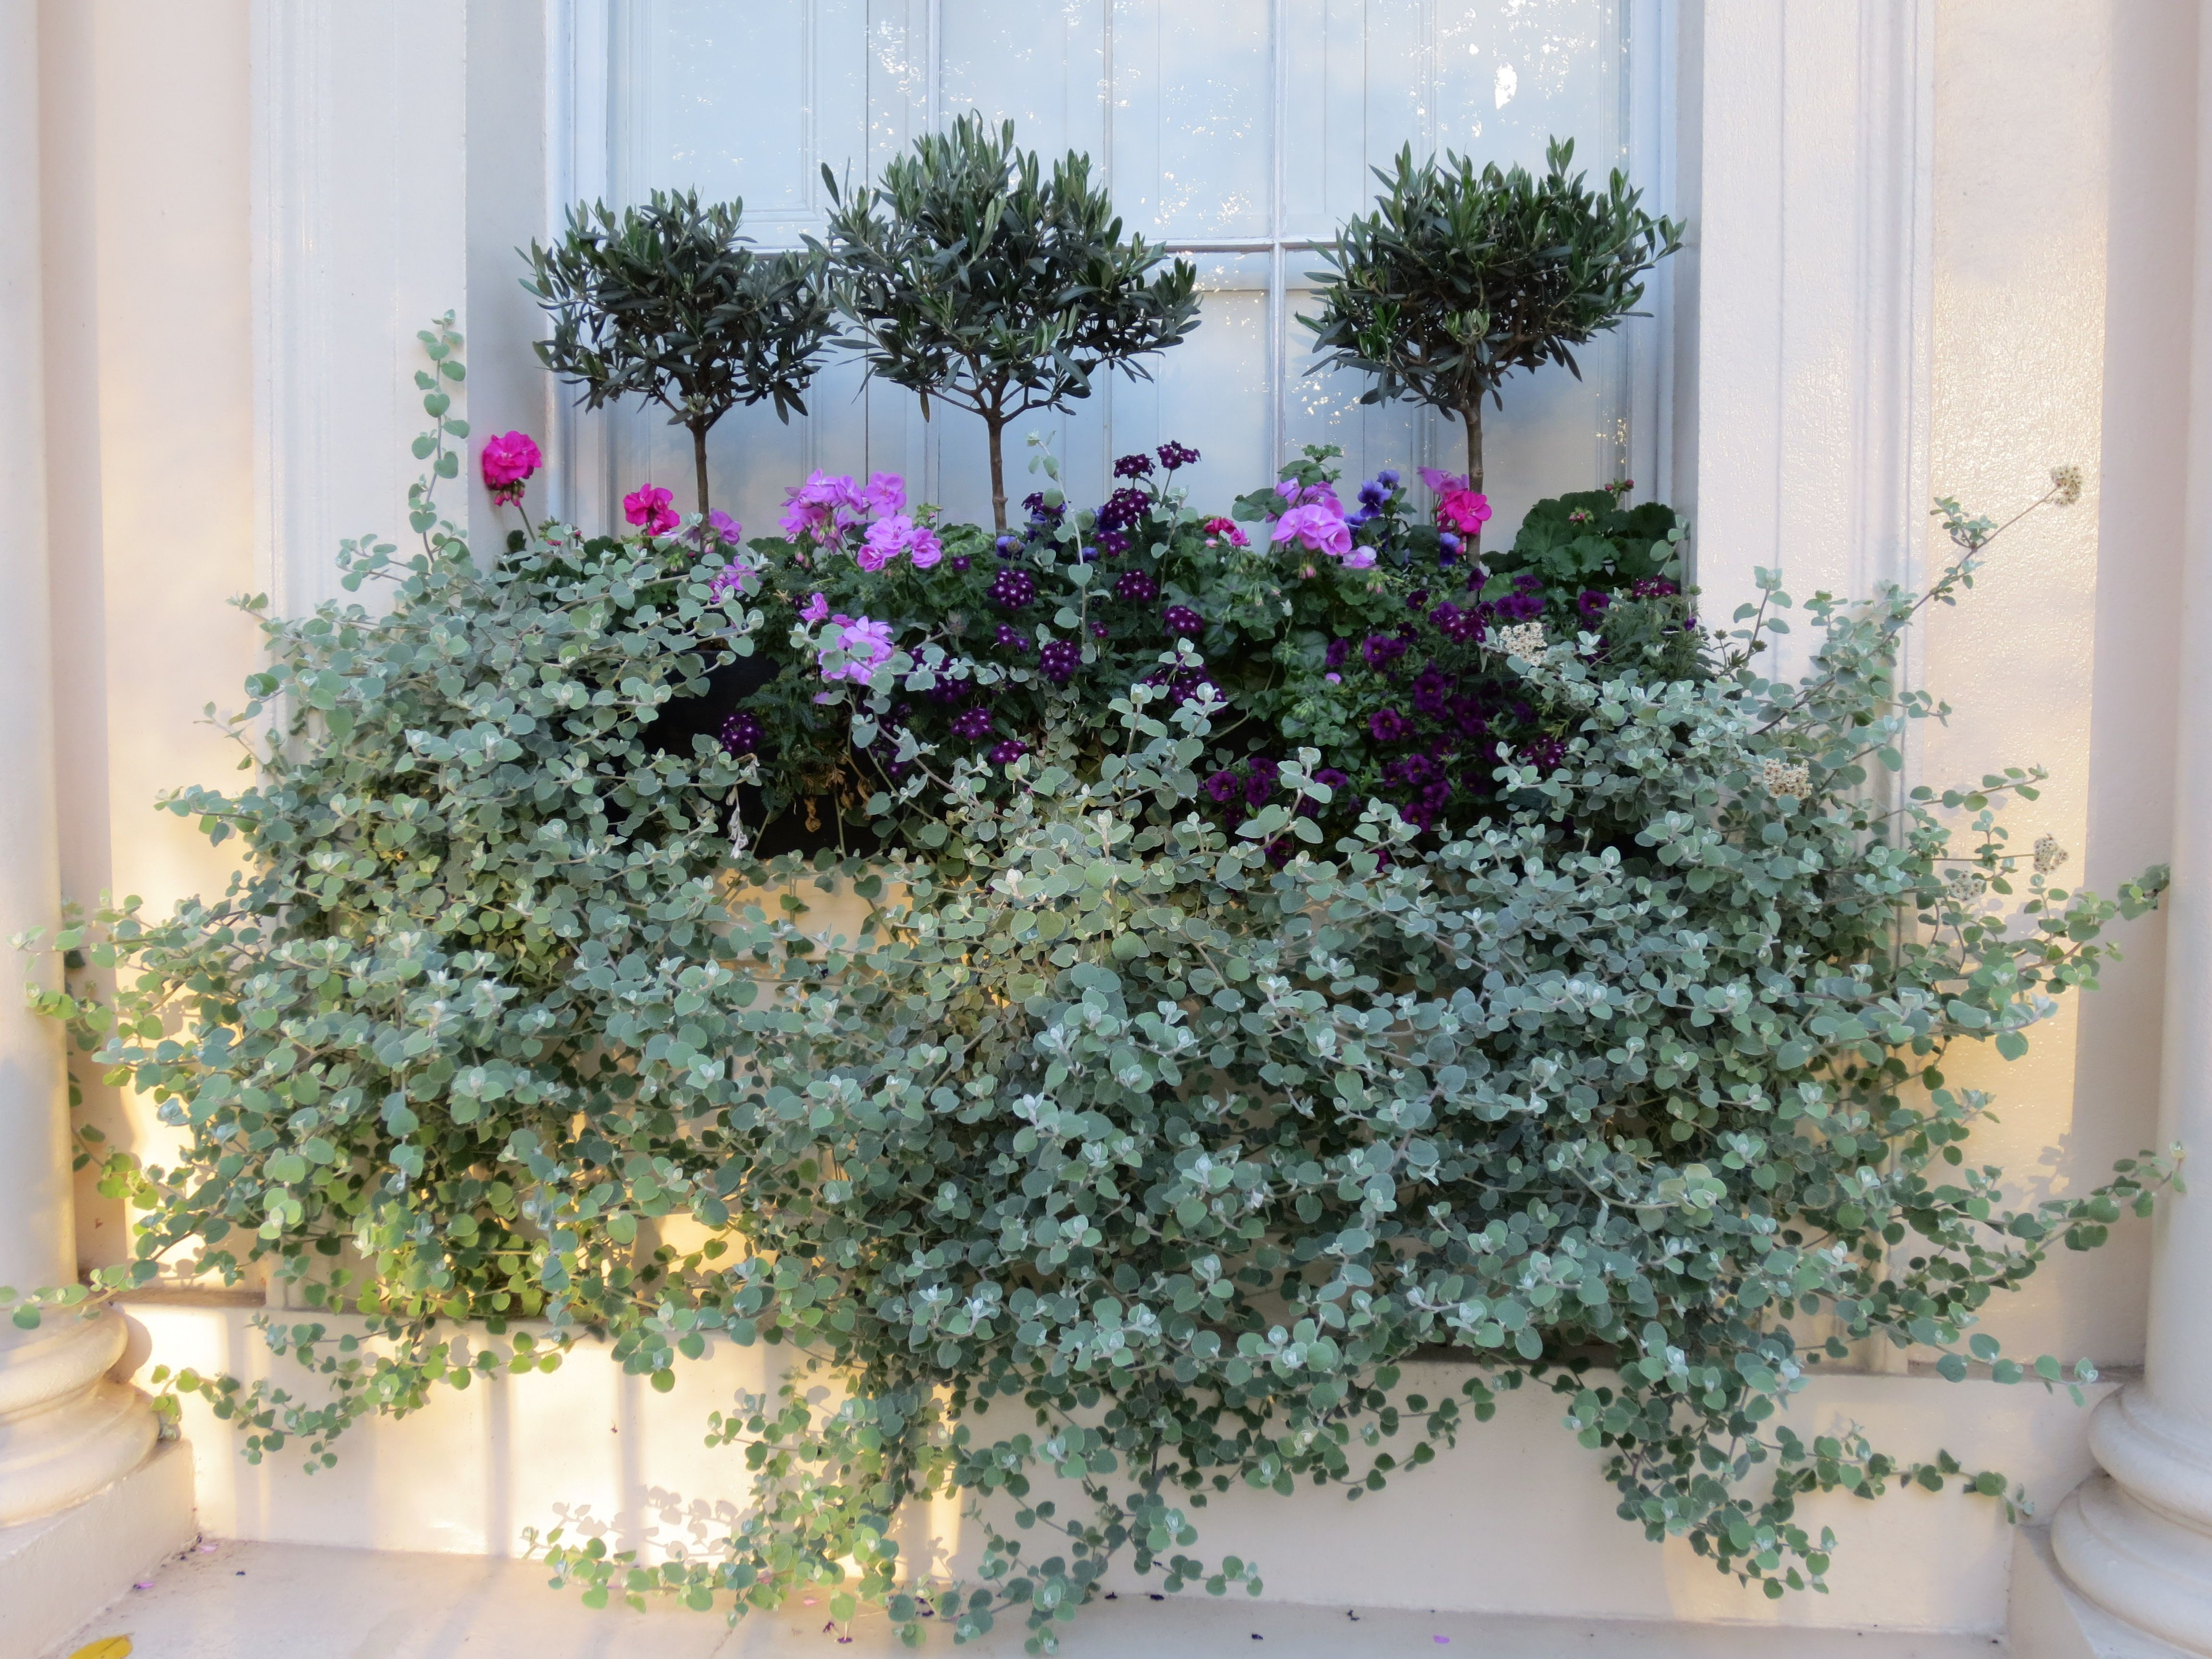 ideas for planting window boxes Google Search